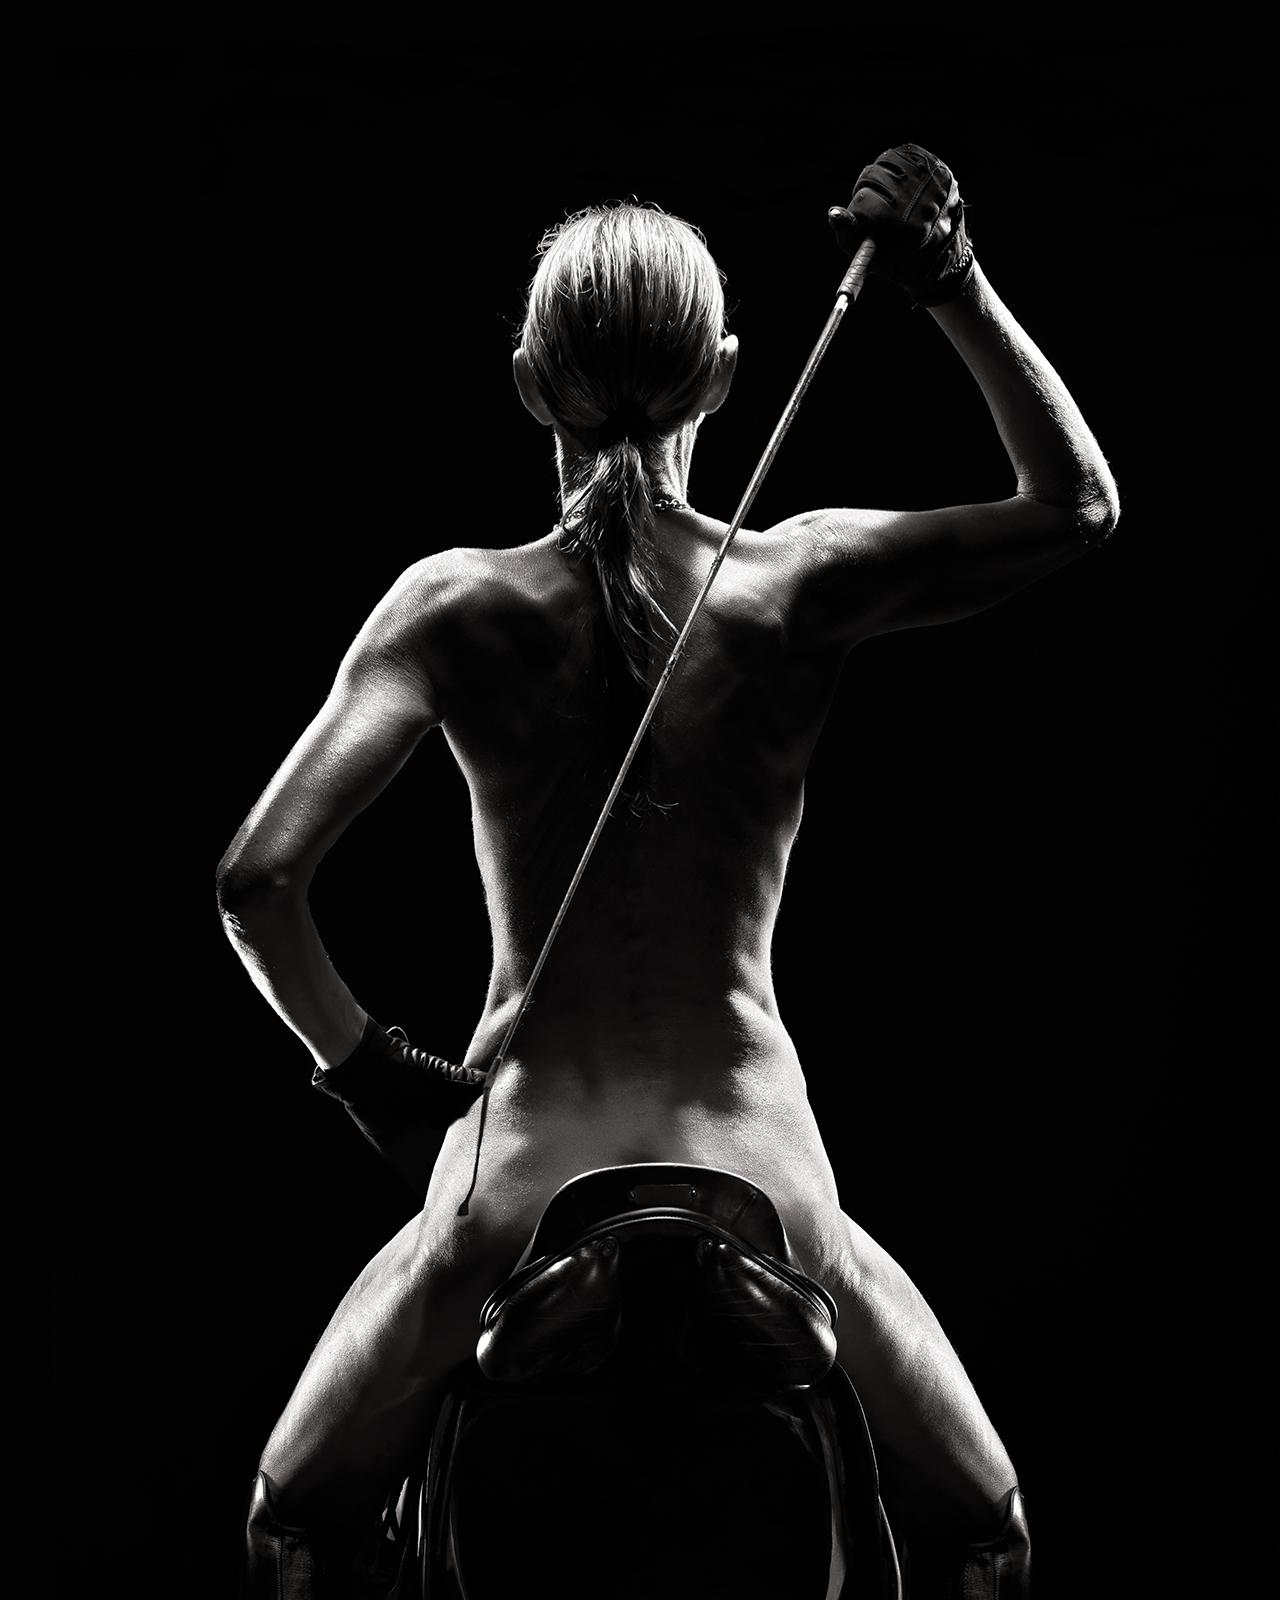 'Saddle, Whip, Nude'- Signed limited edition archival pigment print,Edition of 5